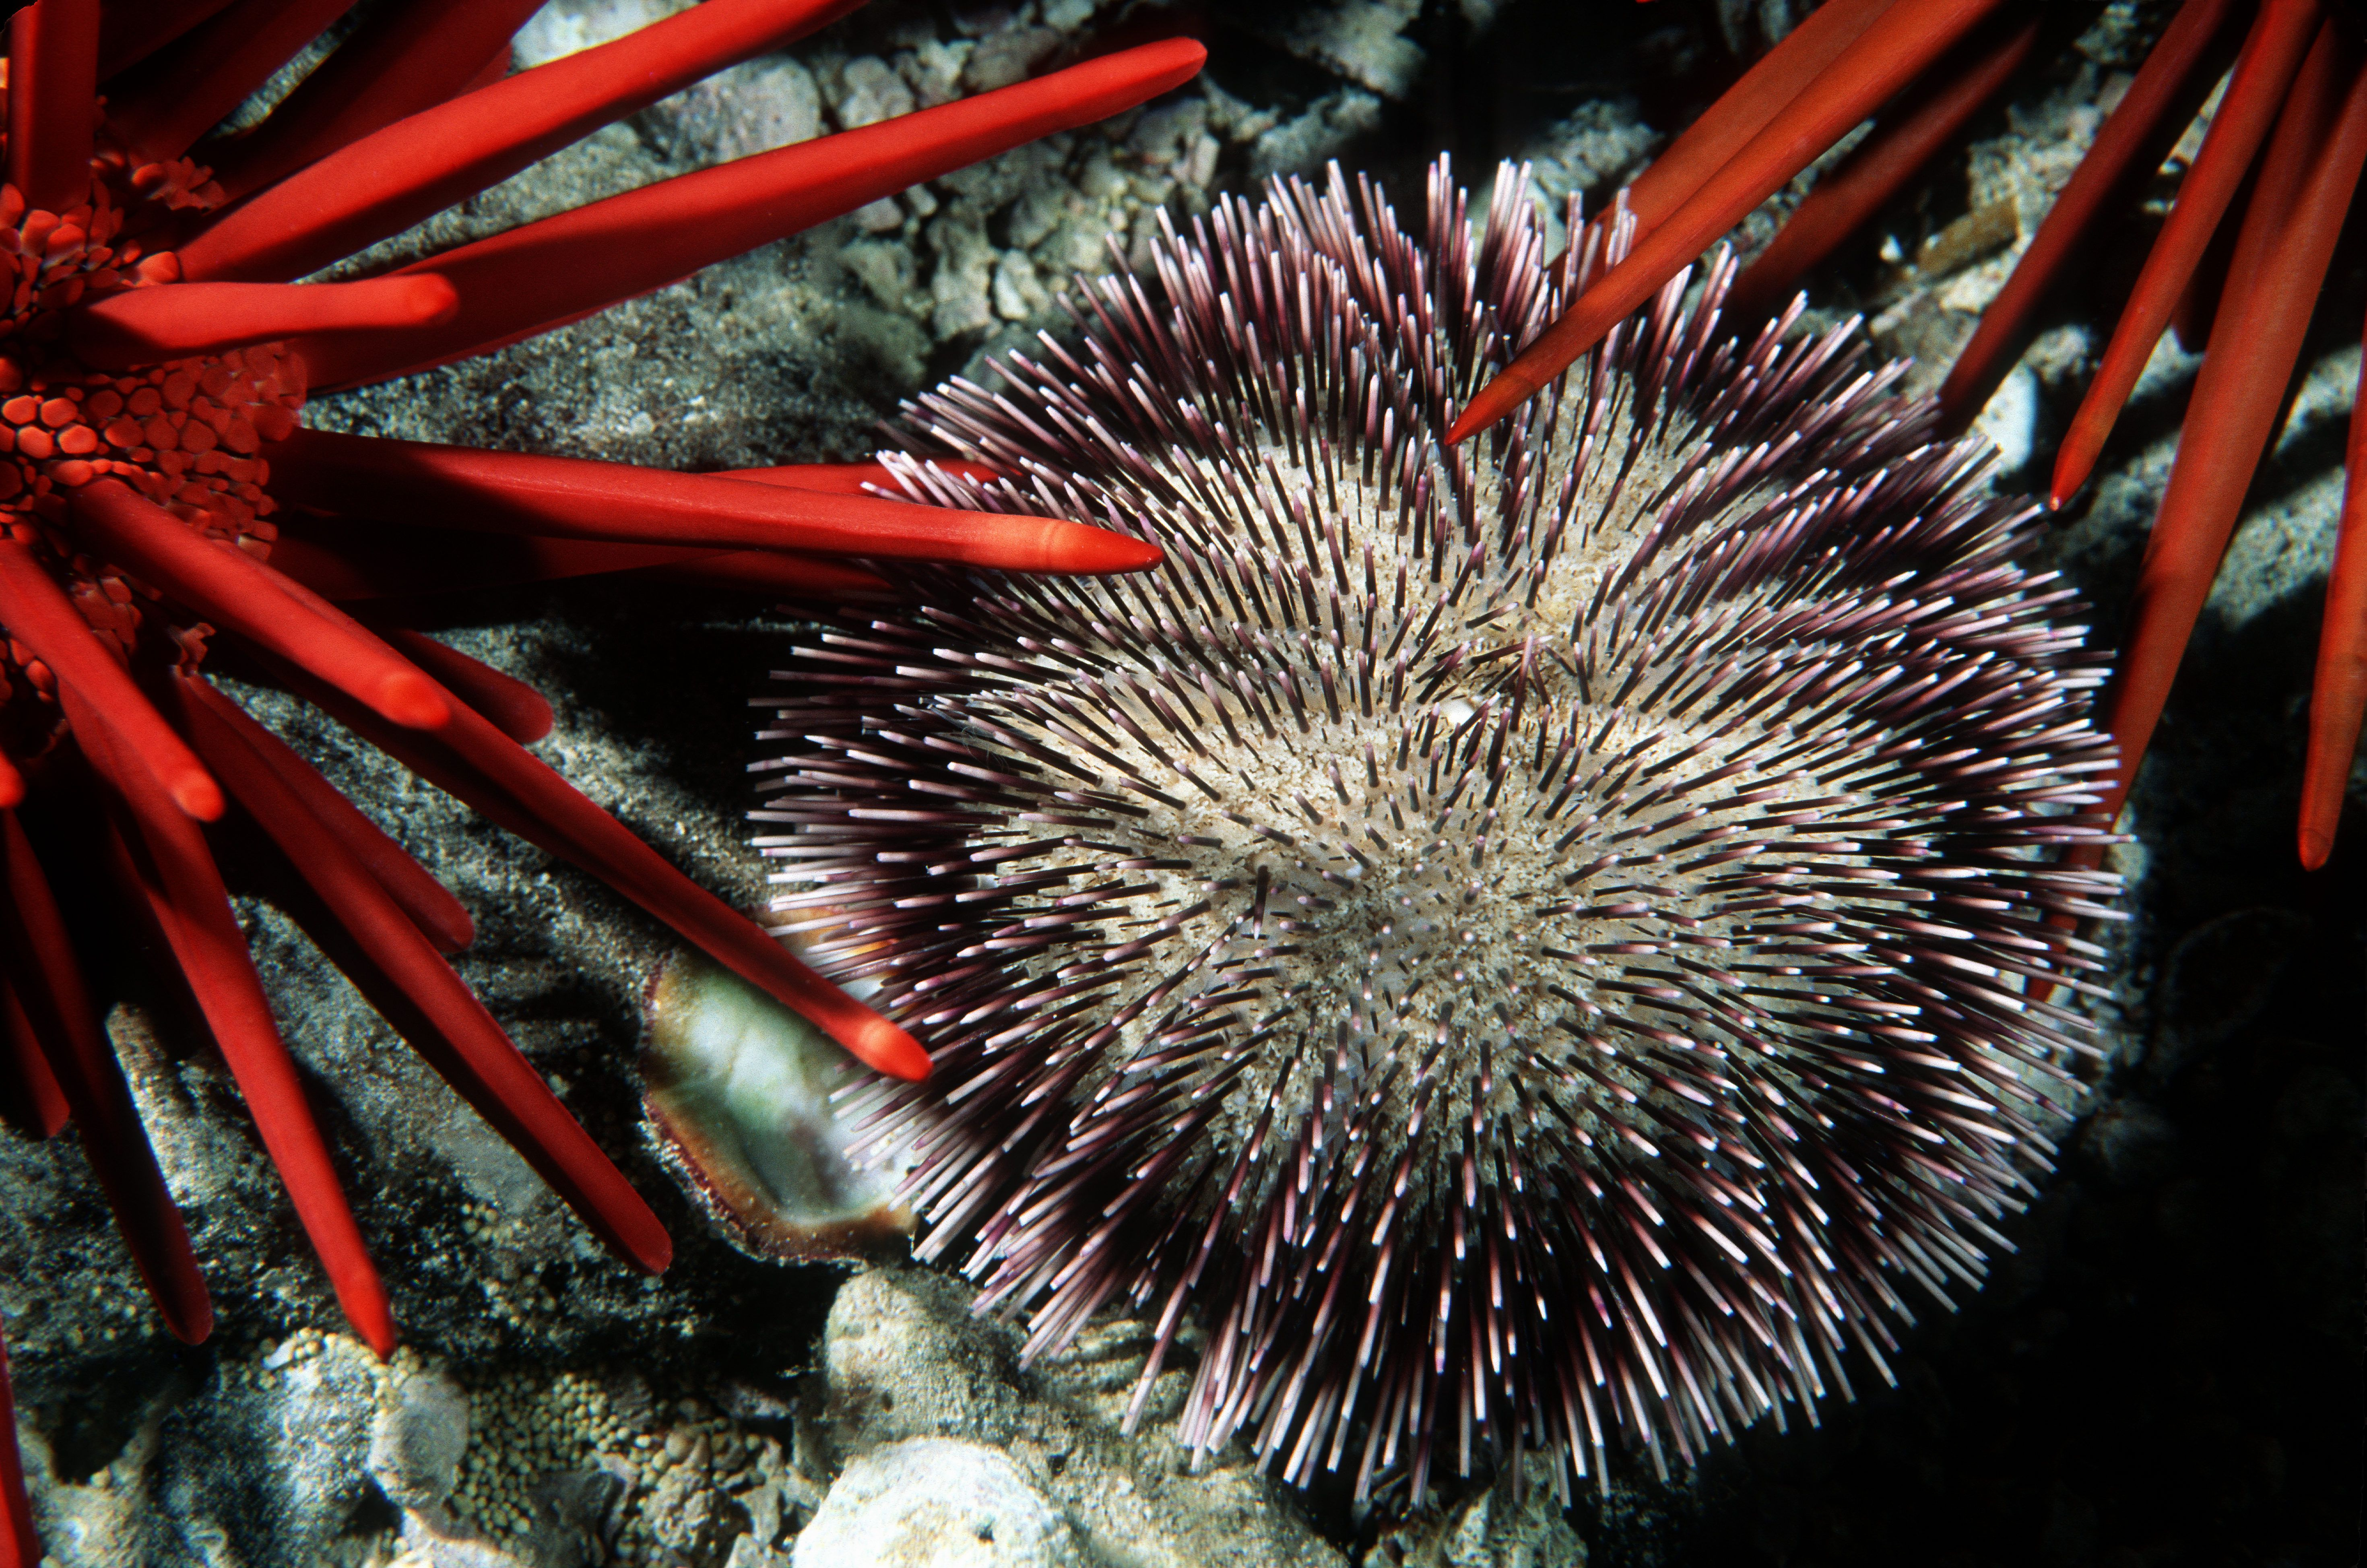 Collector Urchin and Pencil Urchins